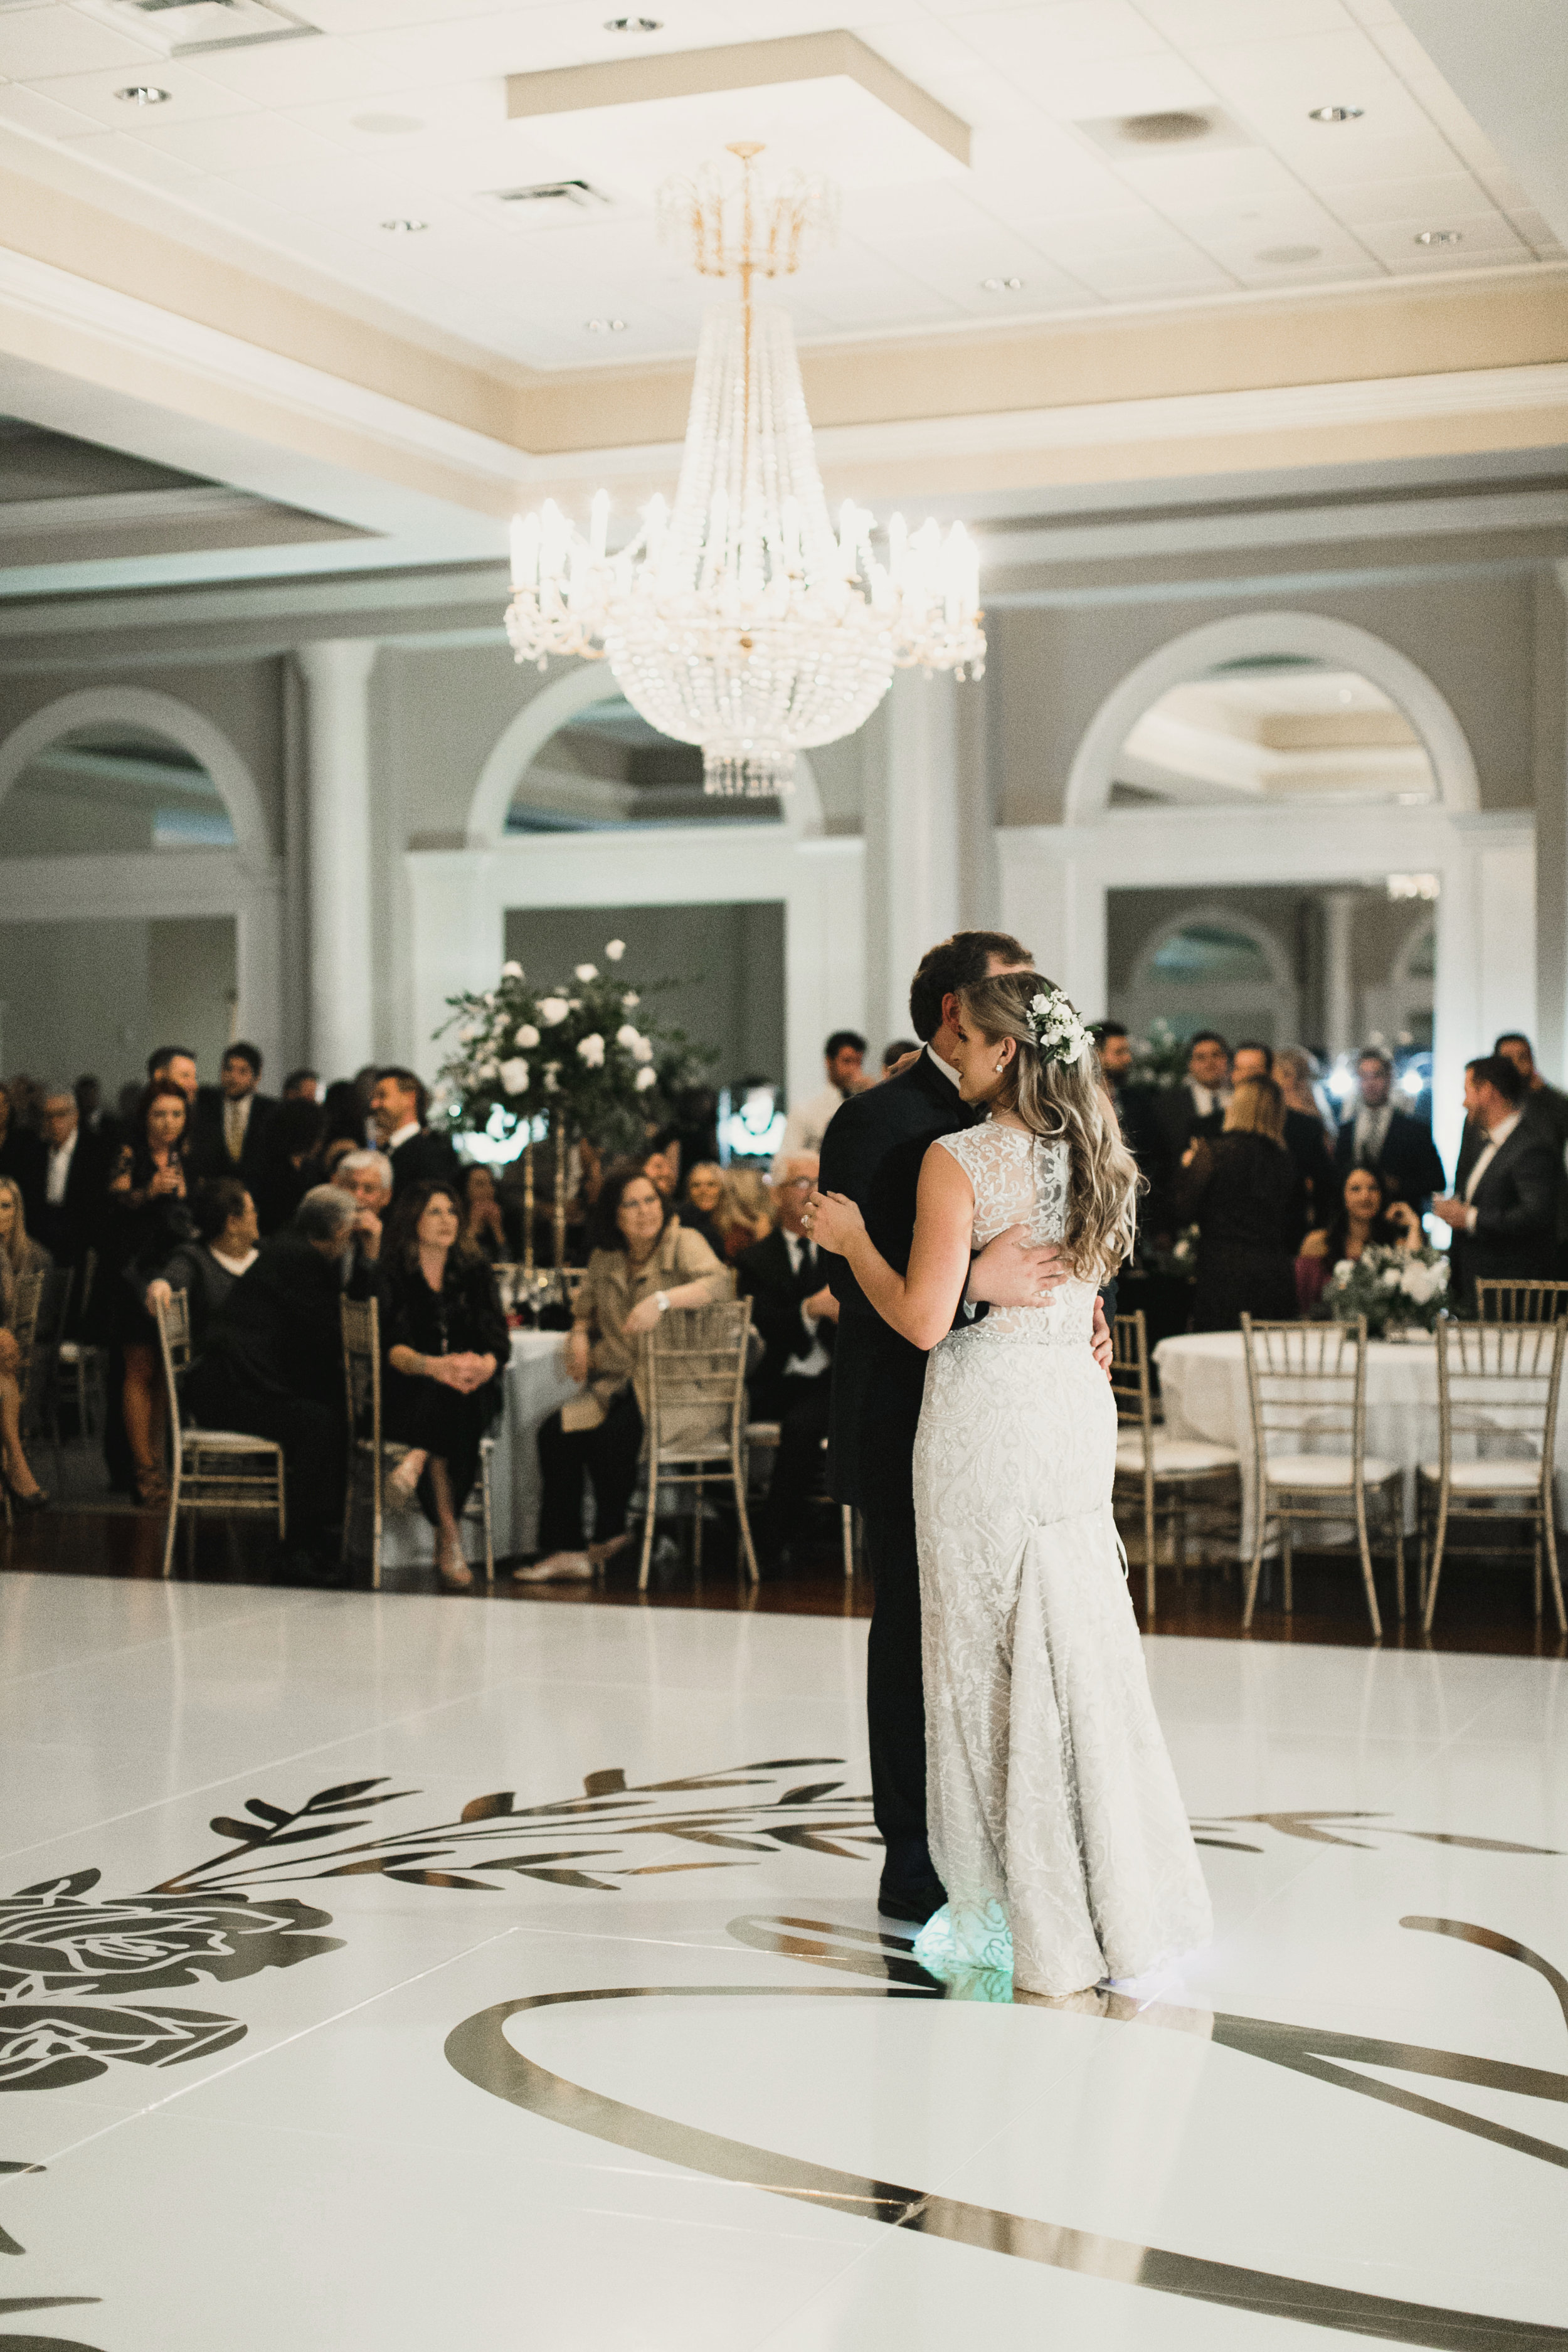 Southern Fete, Southern Wedding, Bride and Groom First Dance, Apercu, Kimbrali Photography